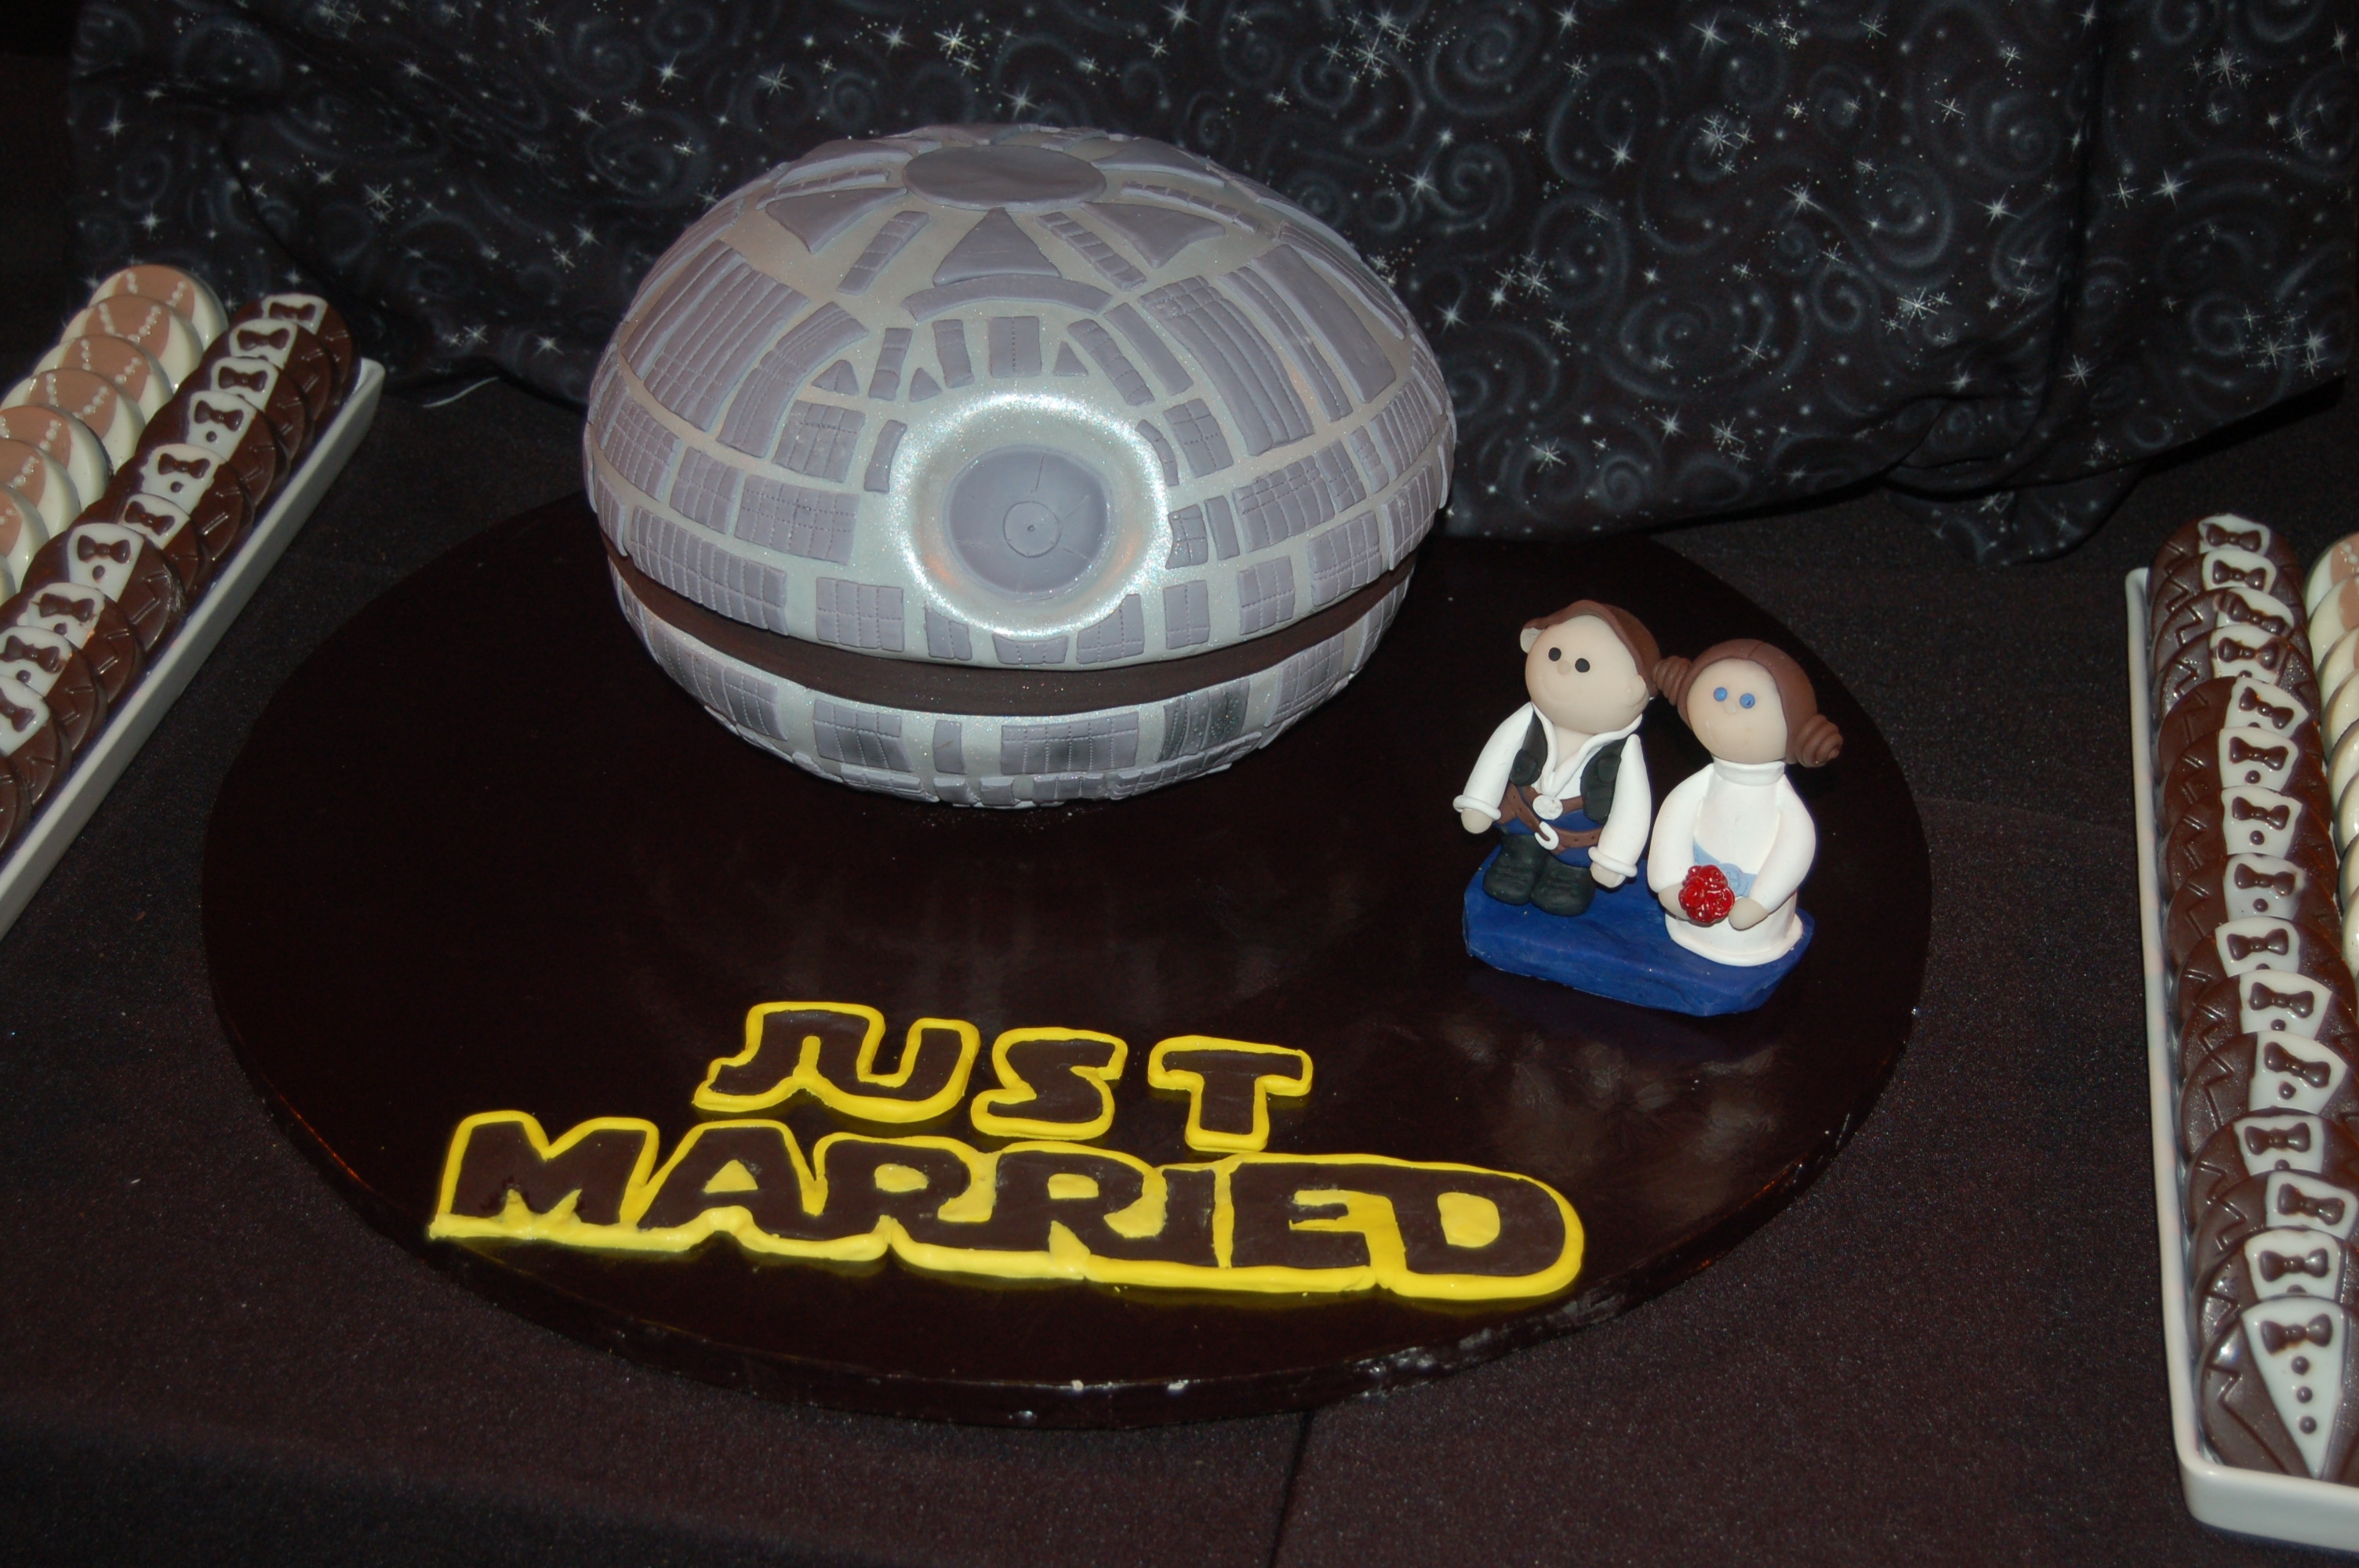 Star Wars Grooms Cake The Toppers Were Sculpted To Resemble Han Solo And Princess Leia Star Wars Groom's Cake! The toppers were sculpted to resemble Han Solo and Princess Leia